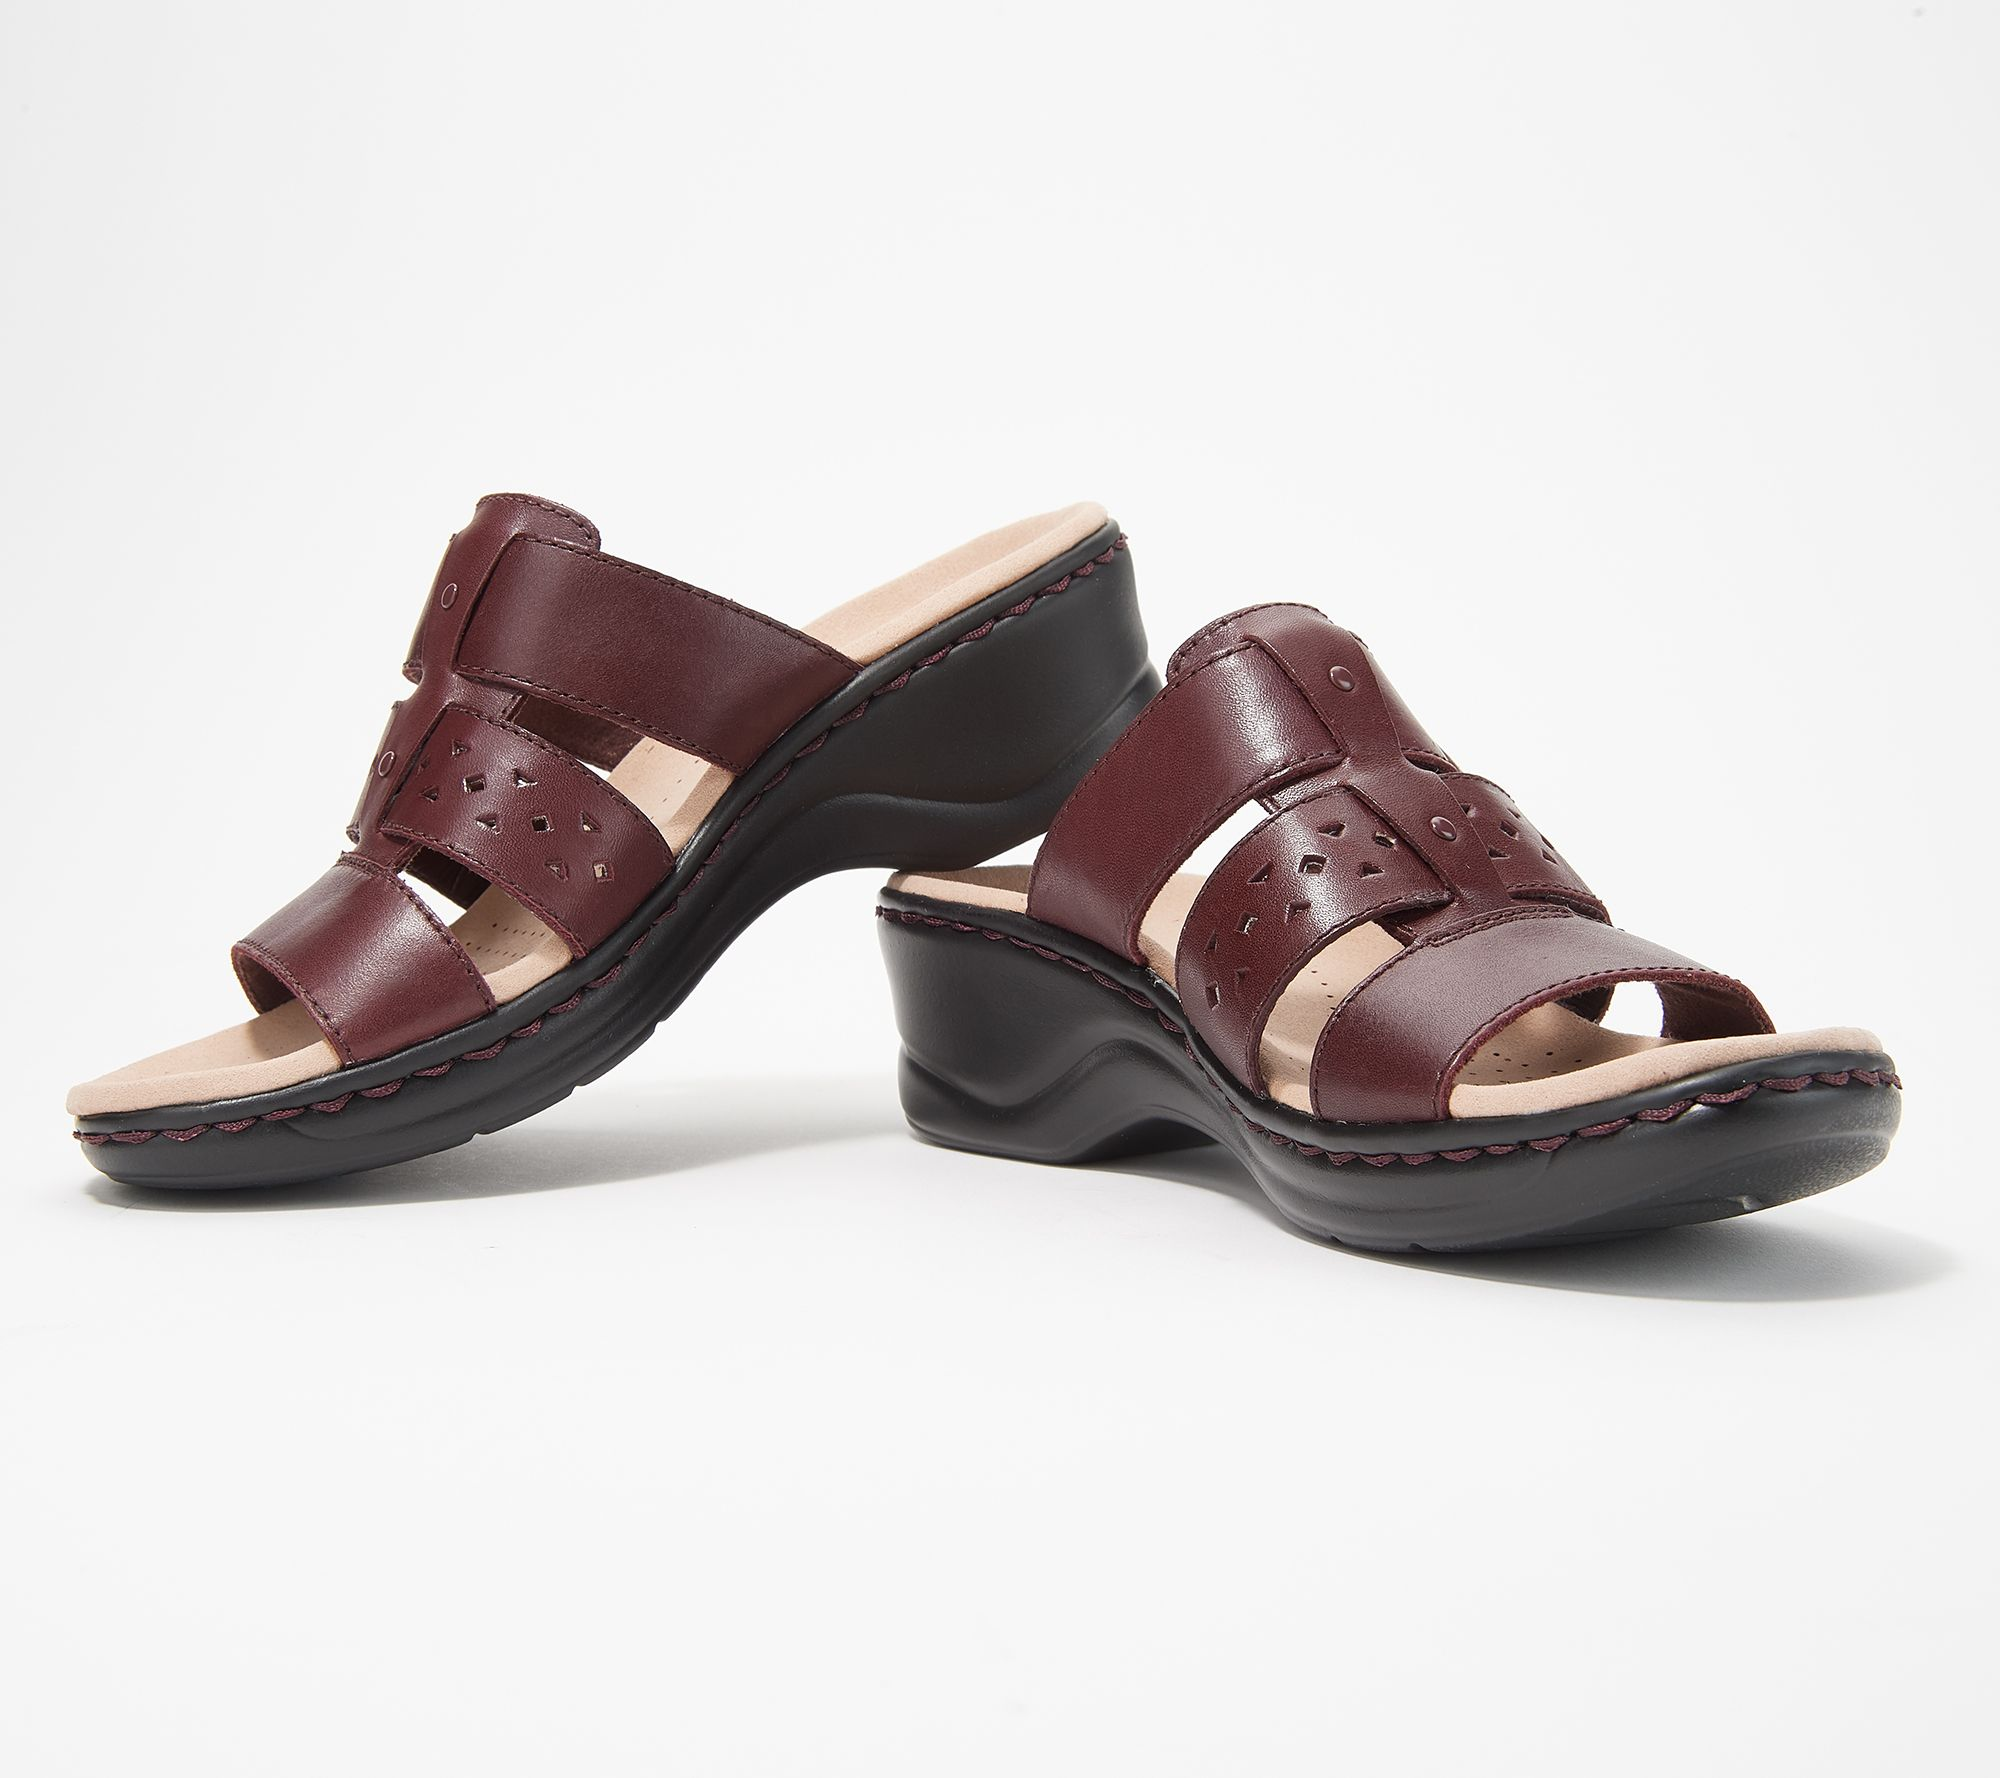 a37167a06 Clarks Collection Leather Slide Sandals - Lexi Juno - Page 1 — QVC.com